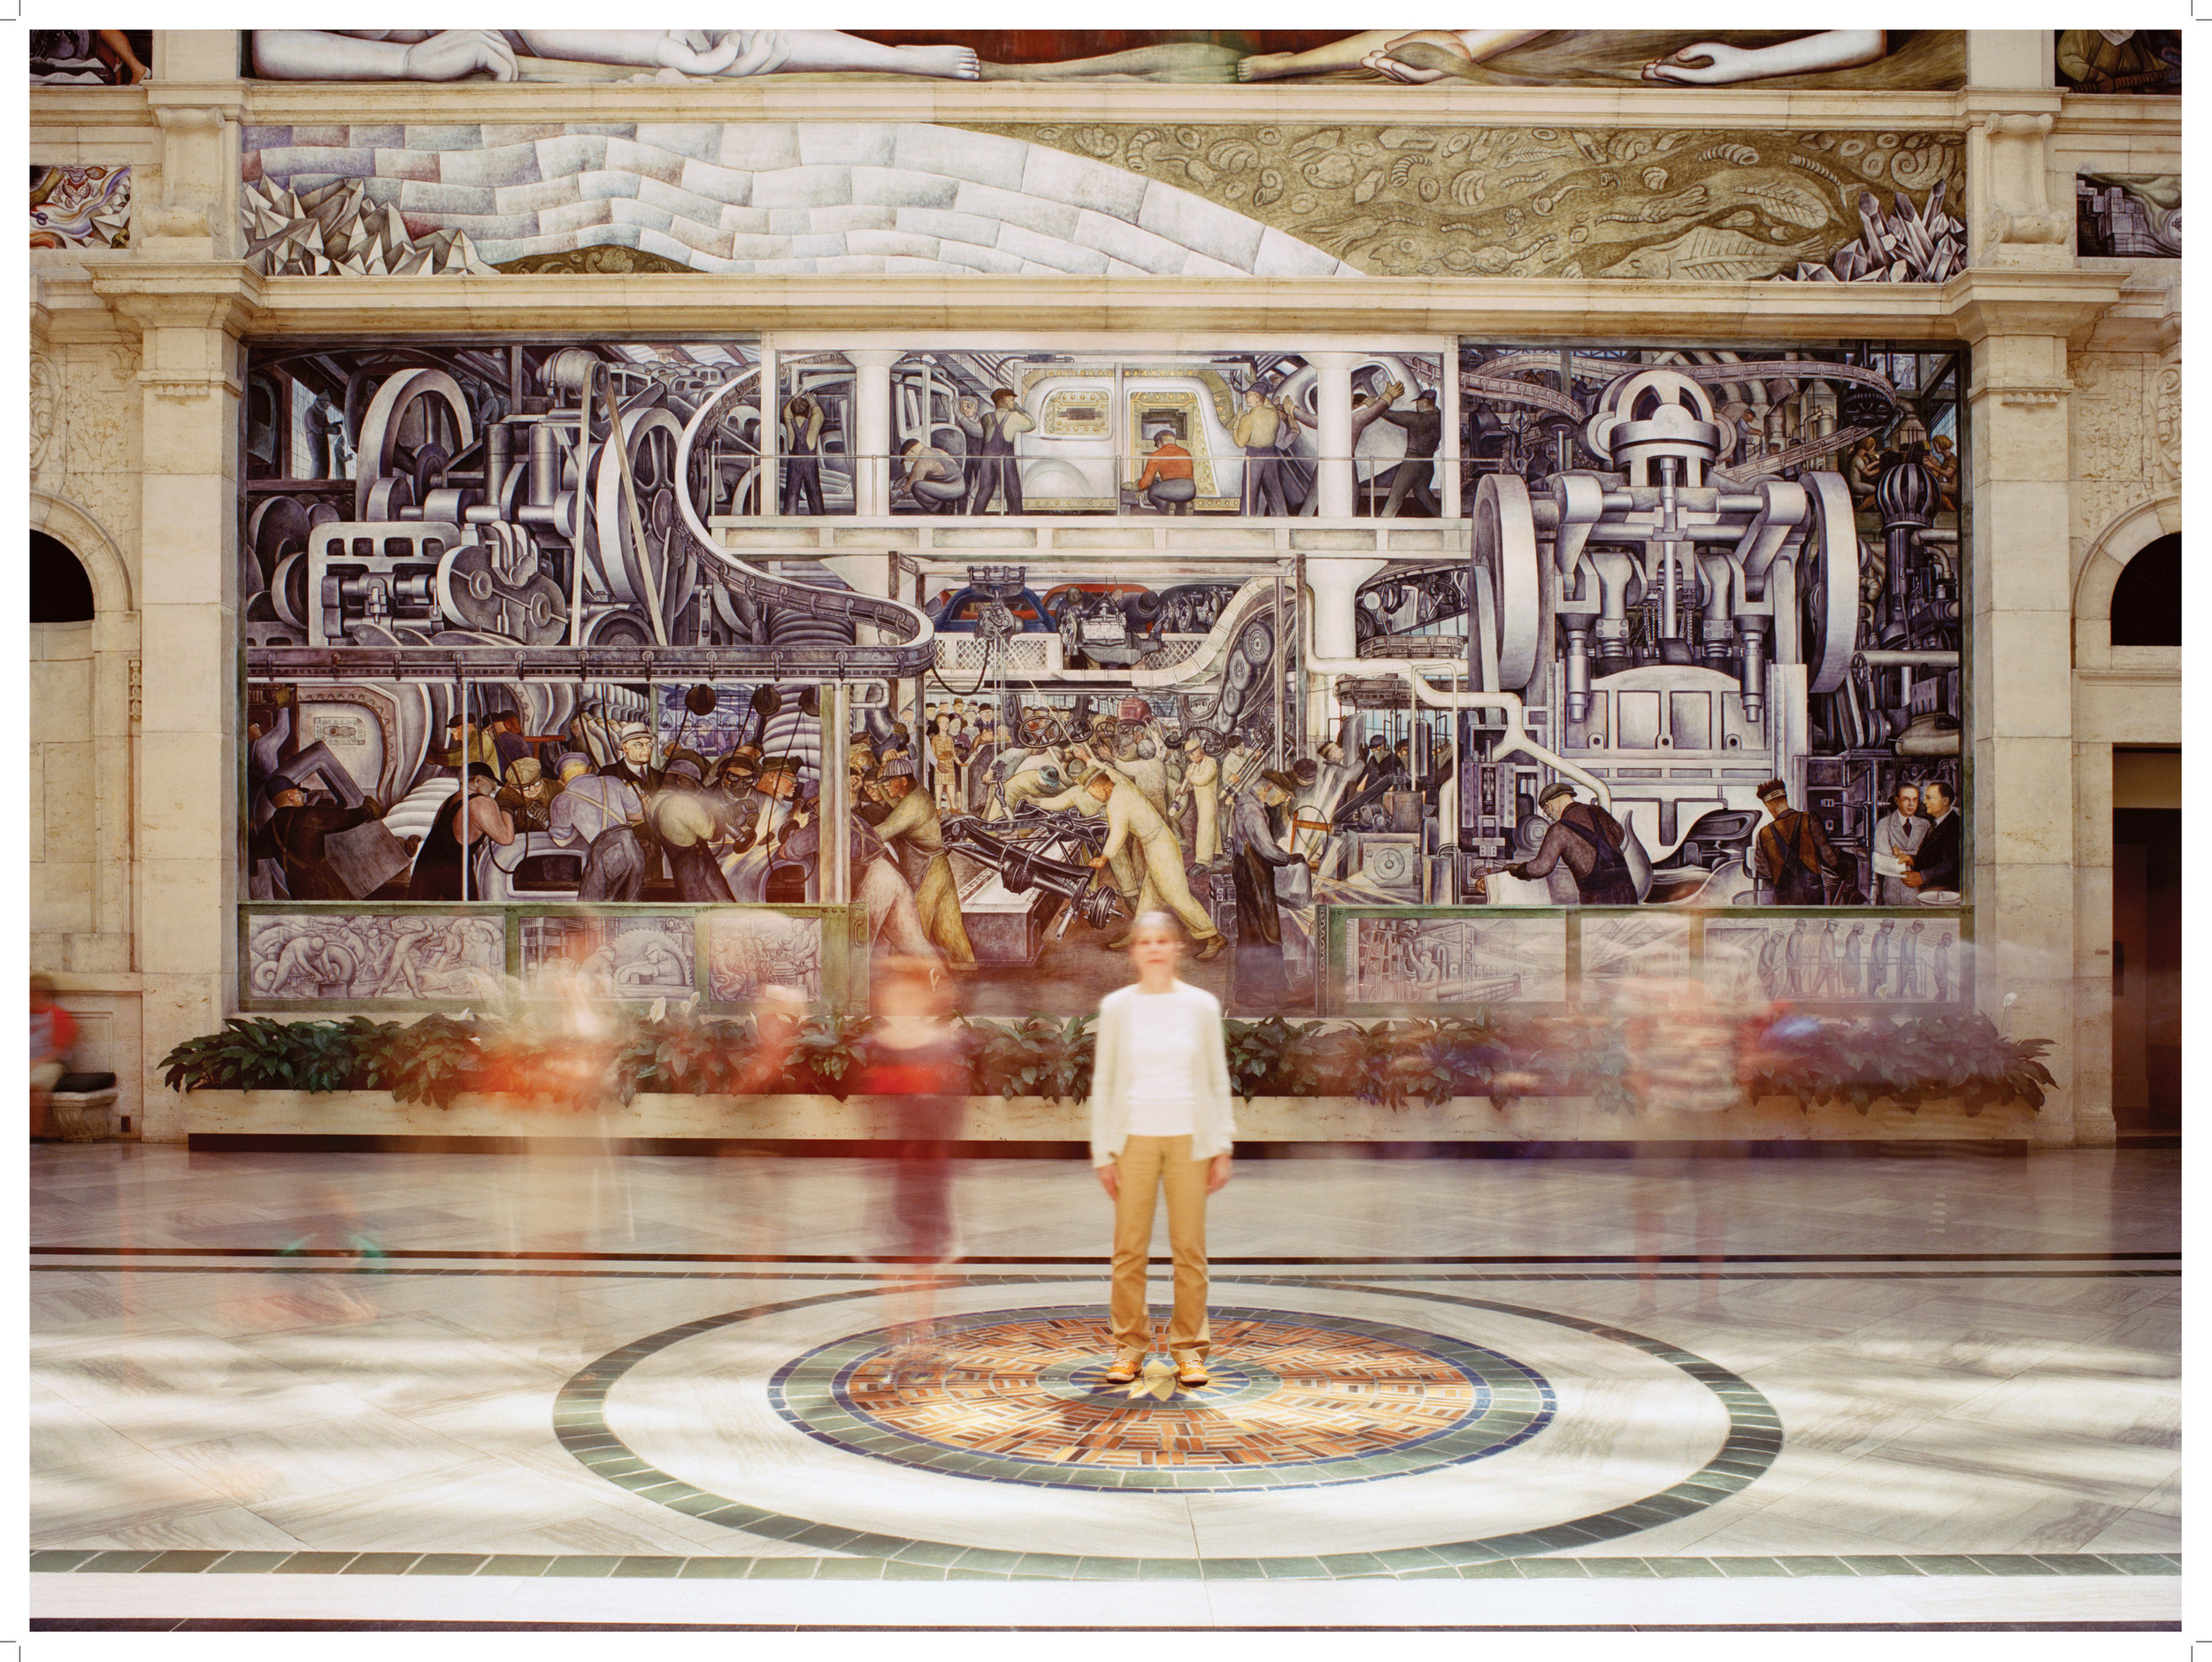 Extended Breathing in the Rivera Frescoes , 2013/2014, series: Extended Breathing in Public Places 2008-14, 152.4 x 203.2 cm, digital chromogenic print